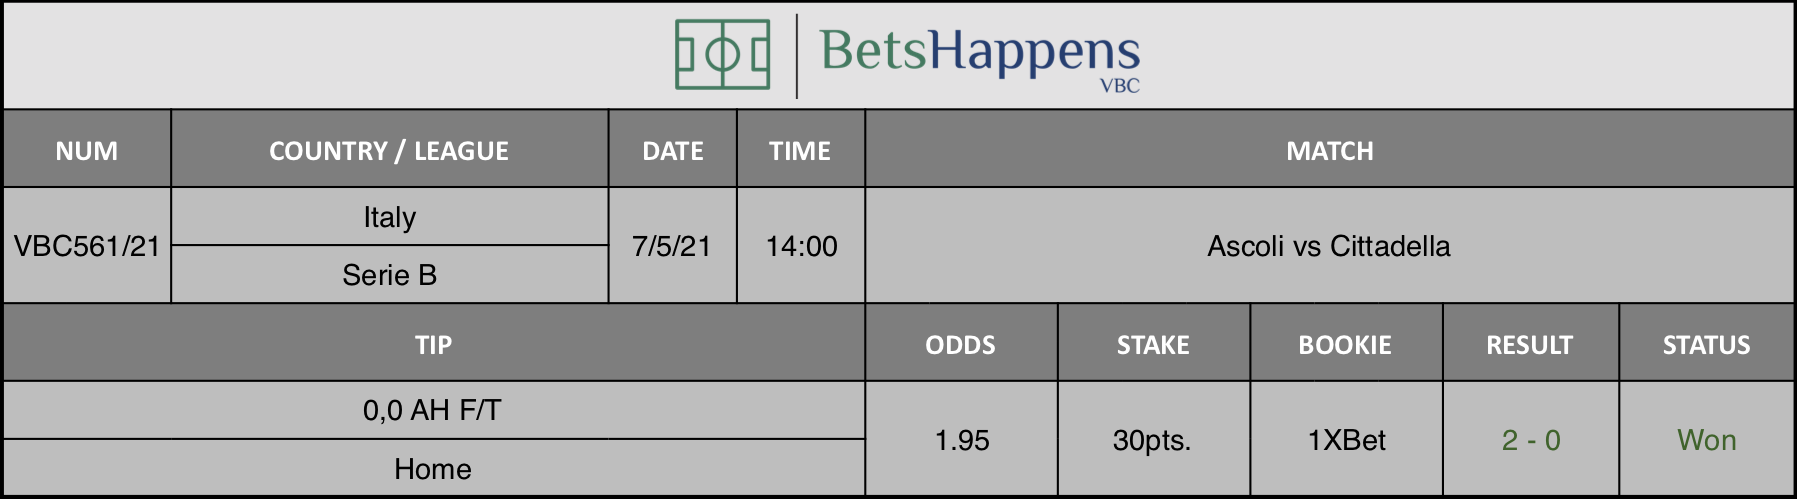 Results of our tip for the Ascoli vs Cittadella match where 0,0 AH F/T Home is recommended.